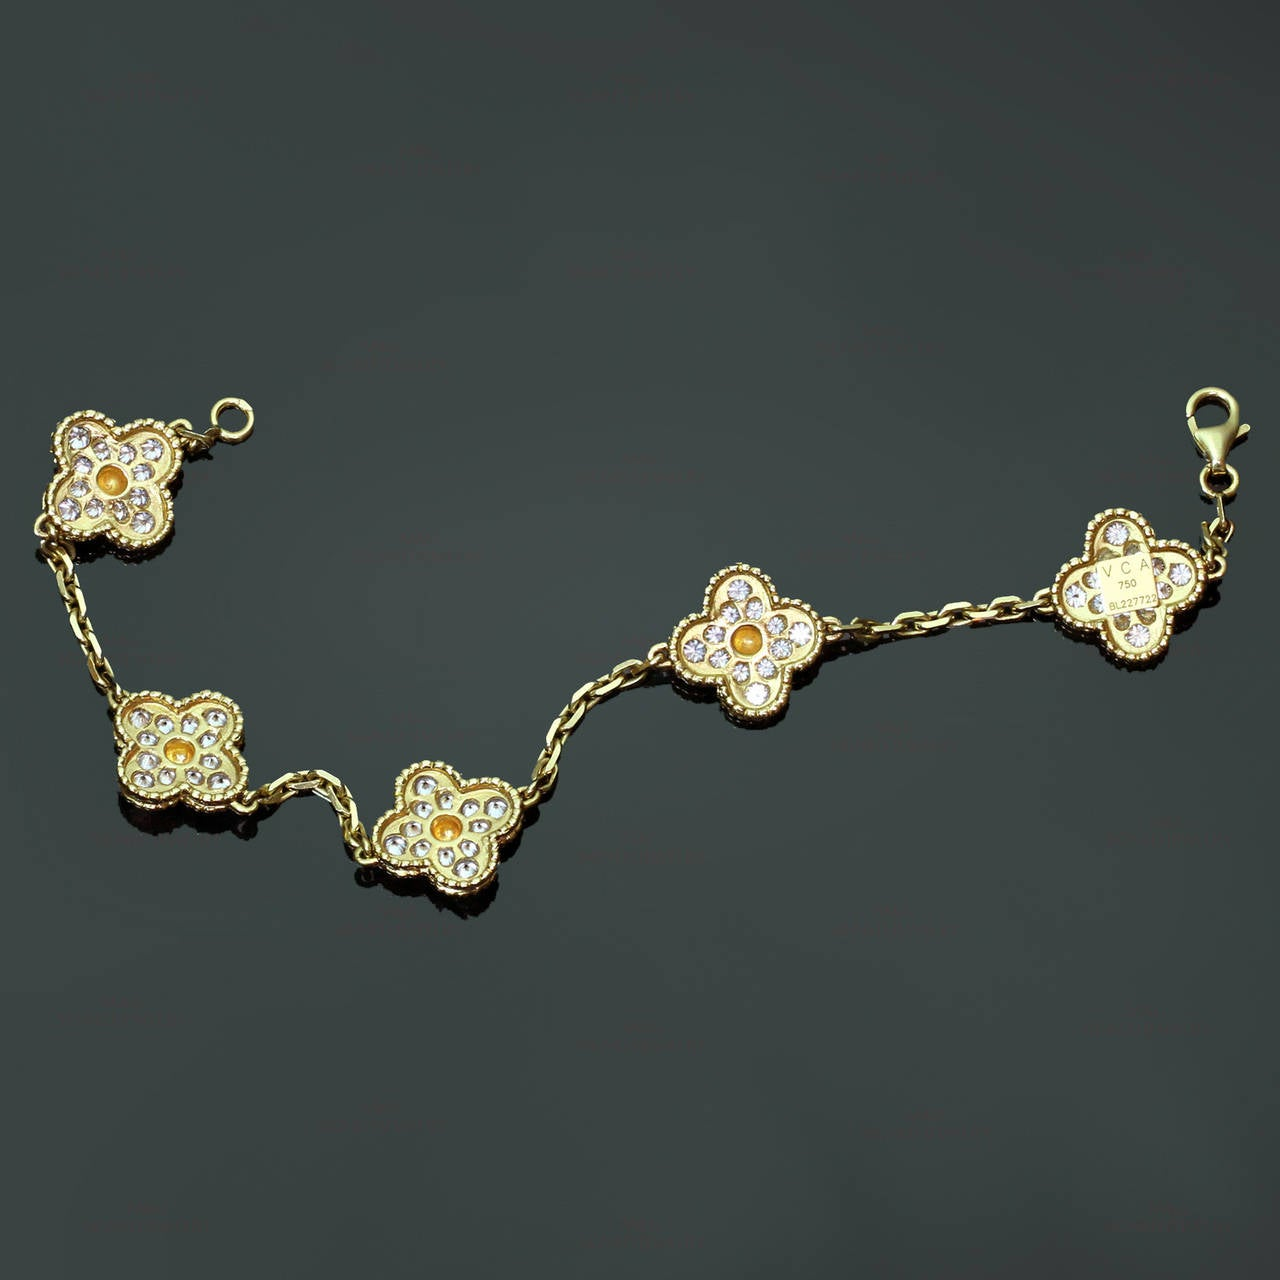 Van Cleef & Arpels Alhambra Diamond Gold Five Motif Bracelet In Excellent Condition For Sale In New York, NY